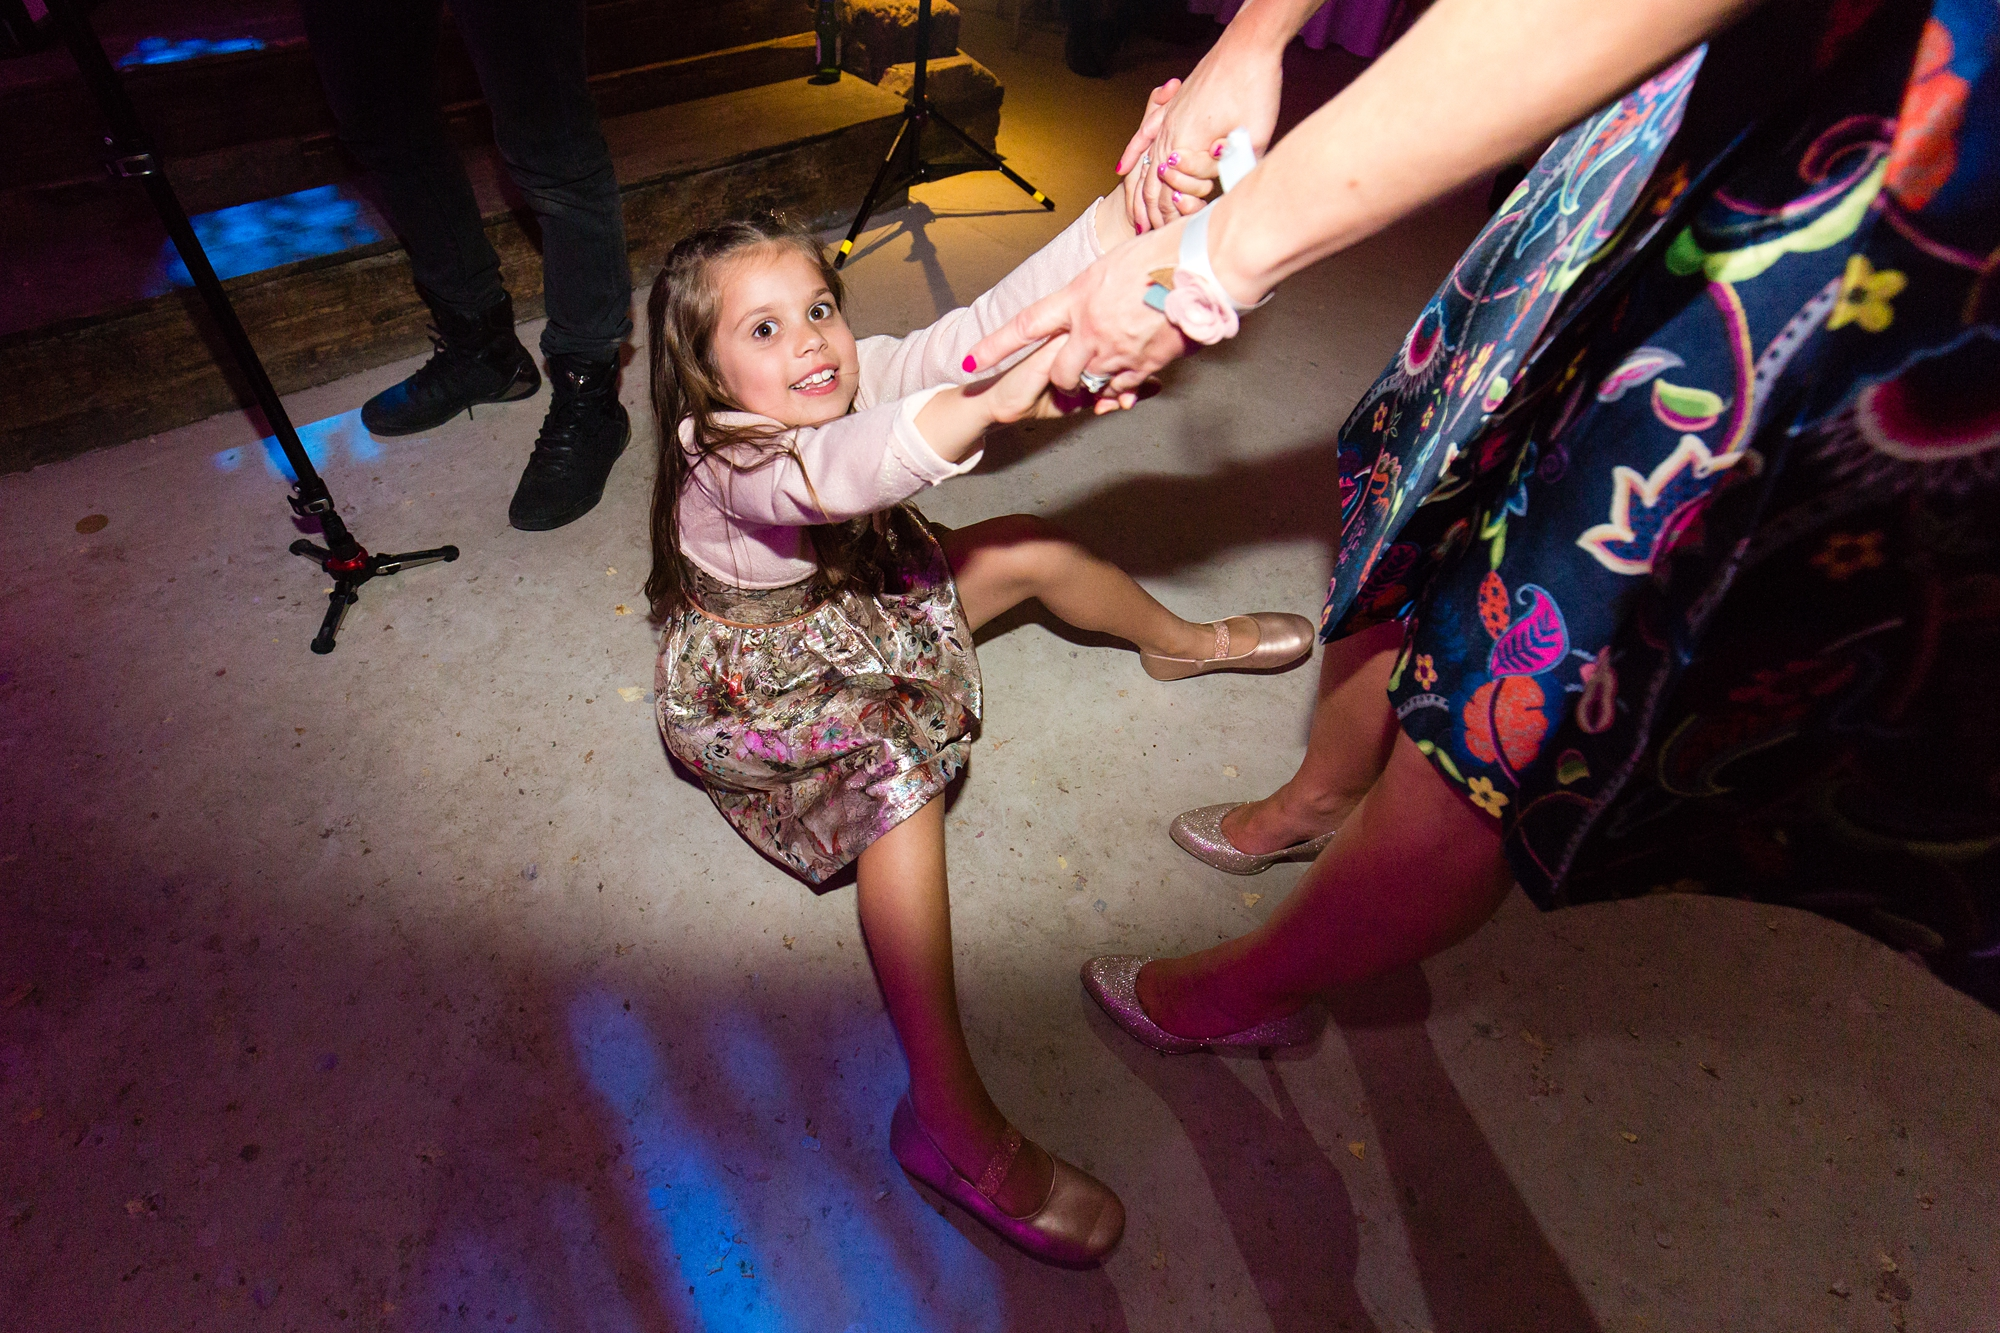 Little girl on the floor at wedding